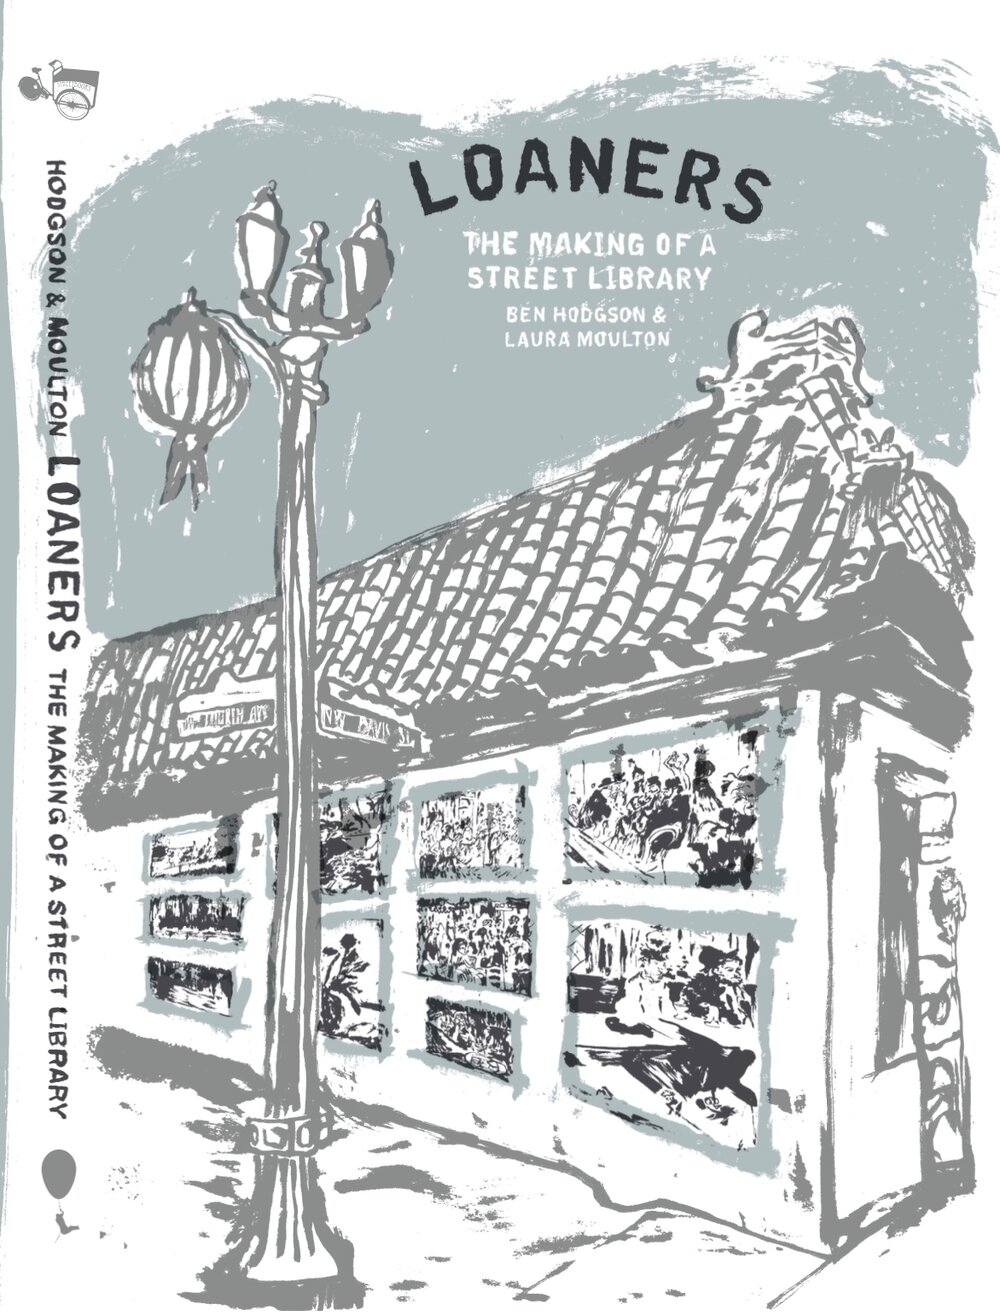 Loaners by Ben Hodgson and Laura Moulton